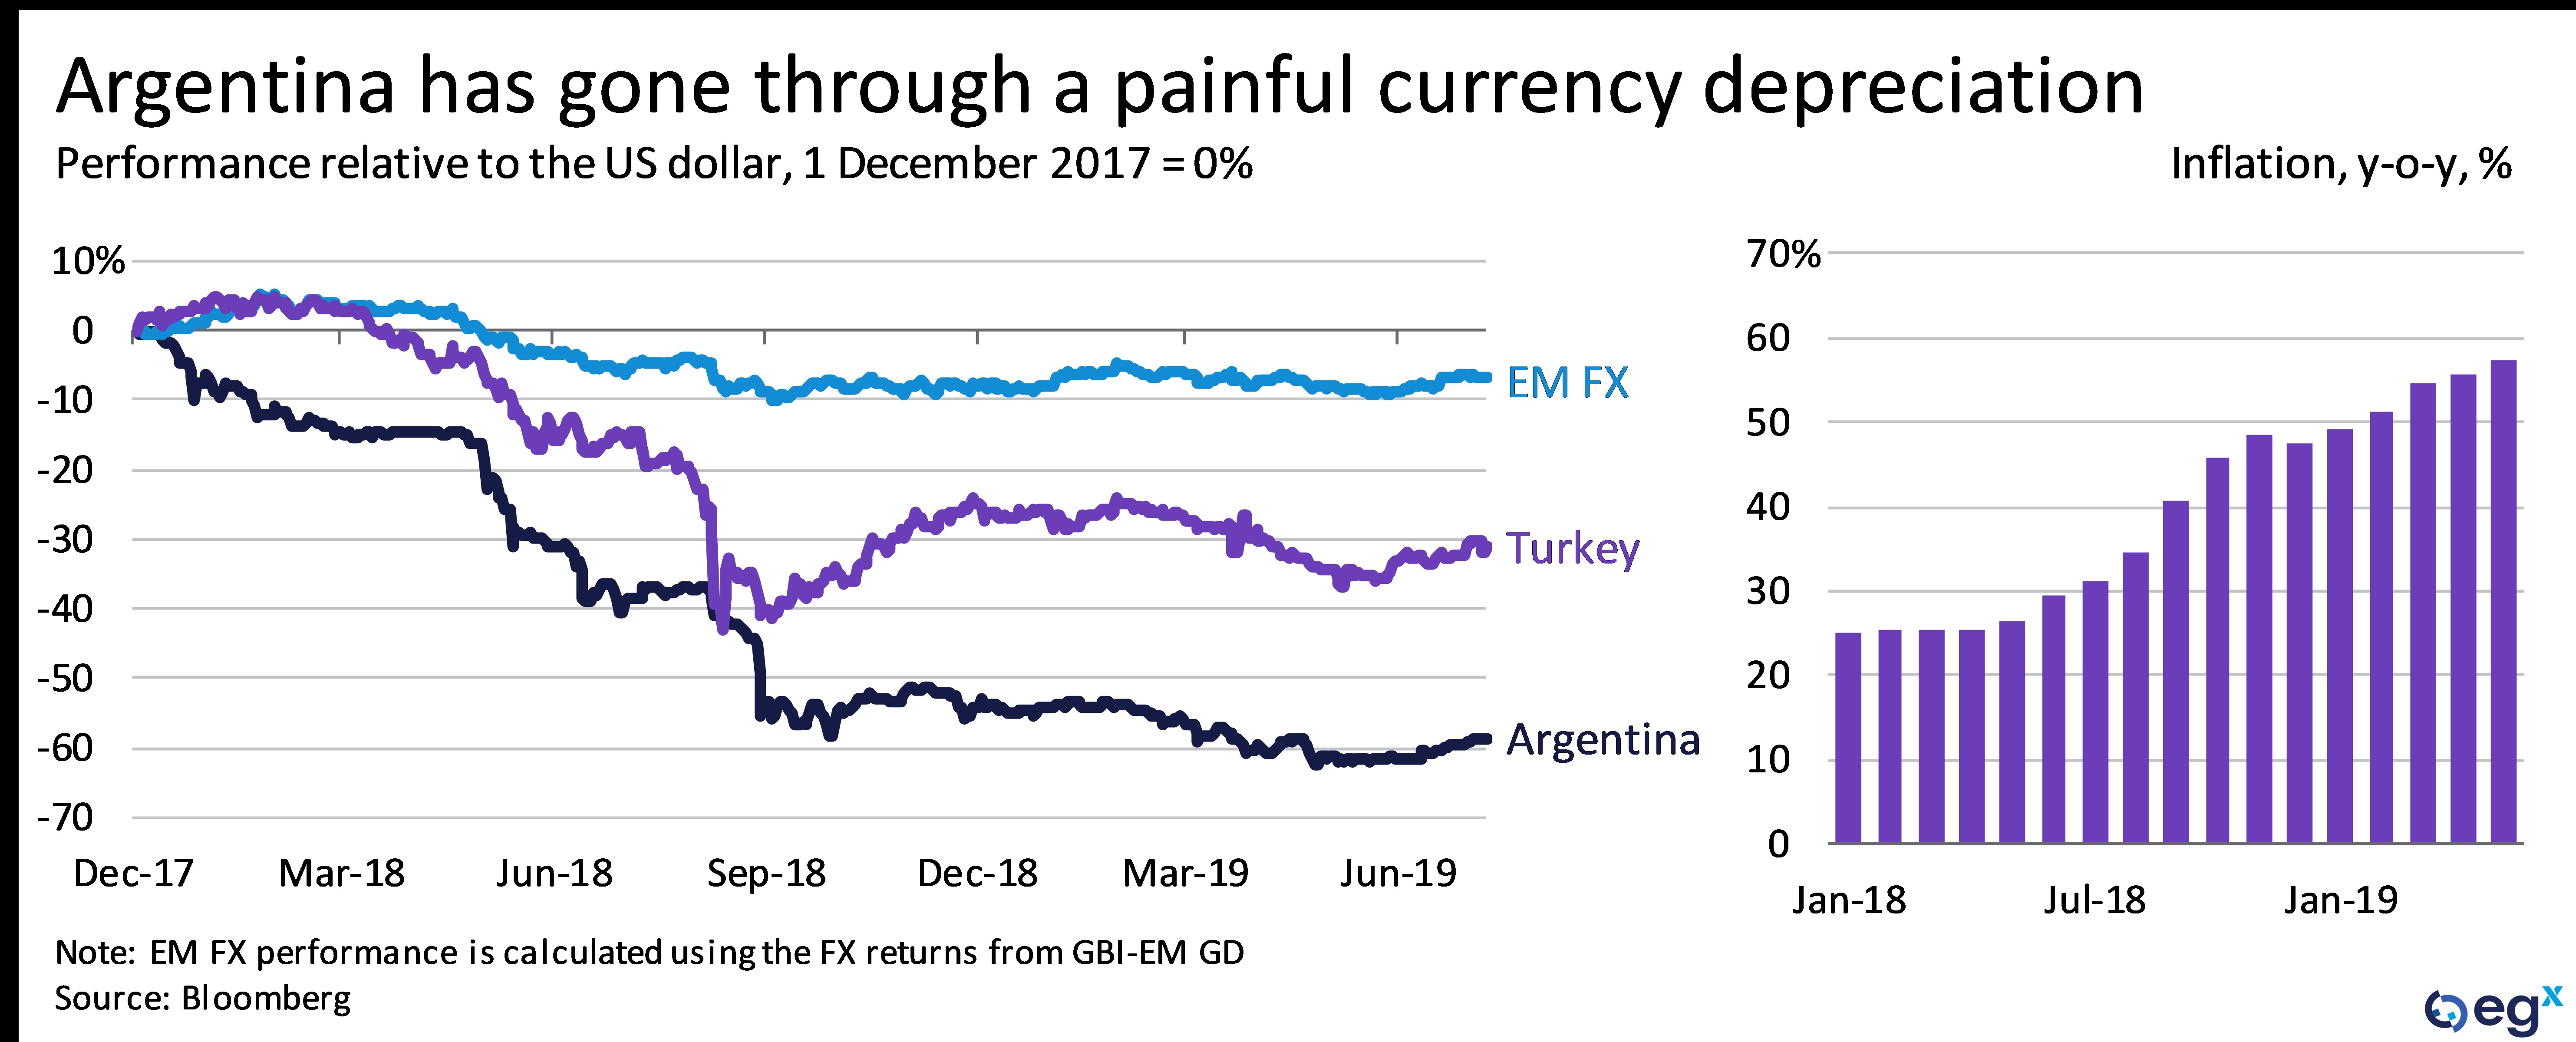 Argentina has gone through a painful currency depreciation